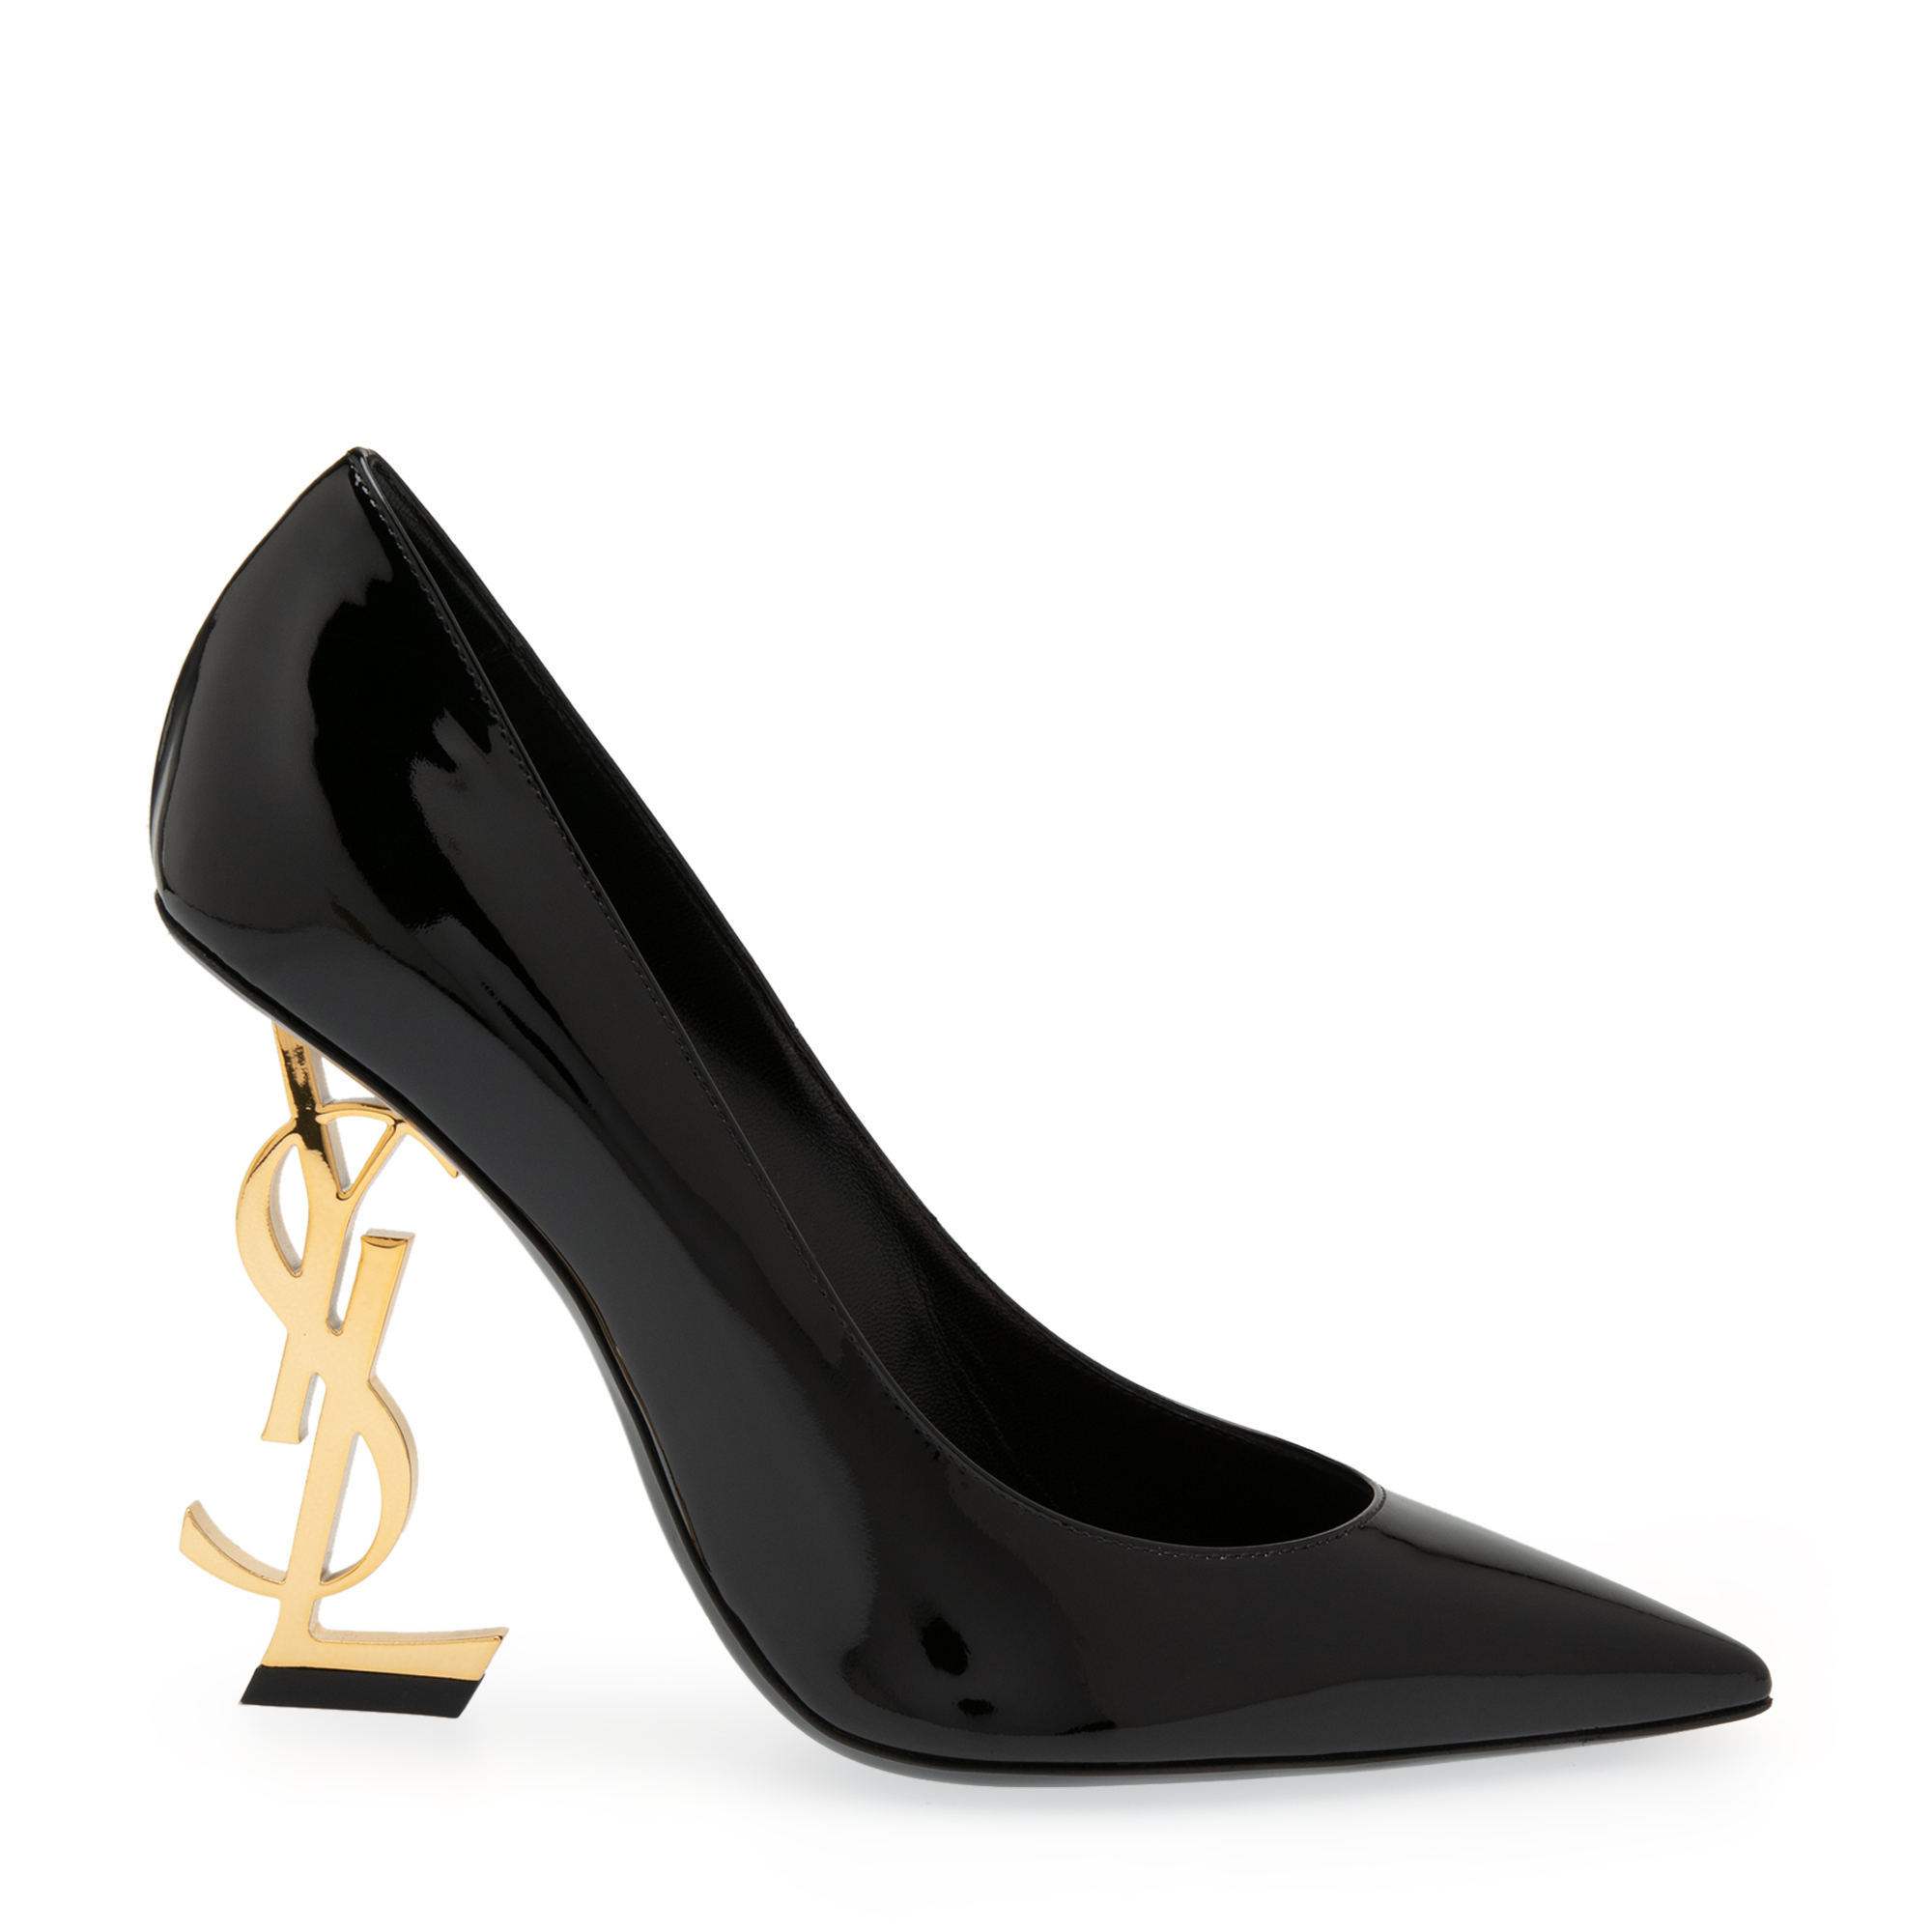 Opyum patent leather pumps